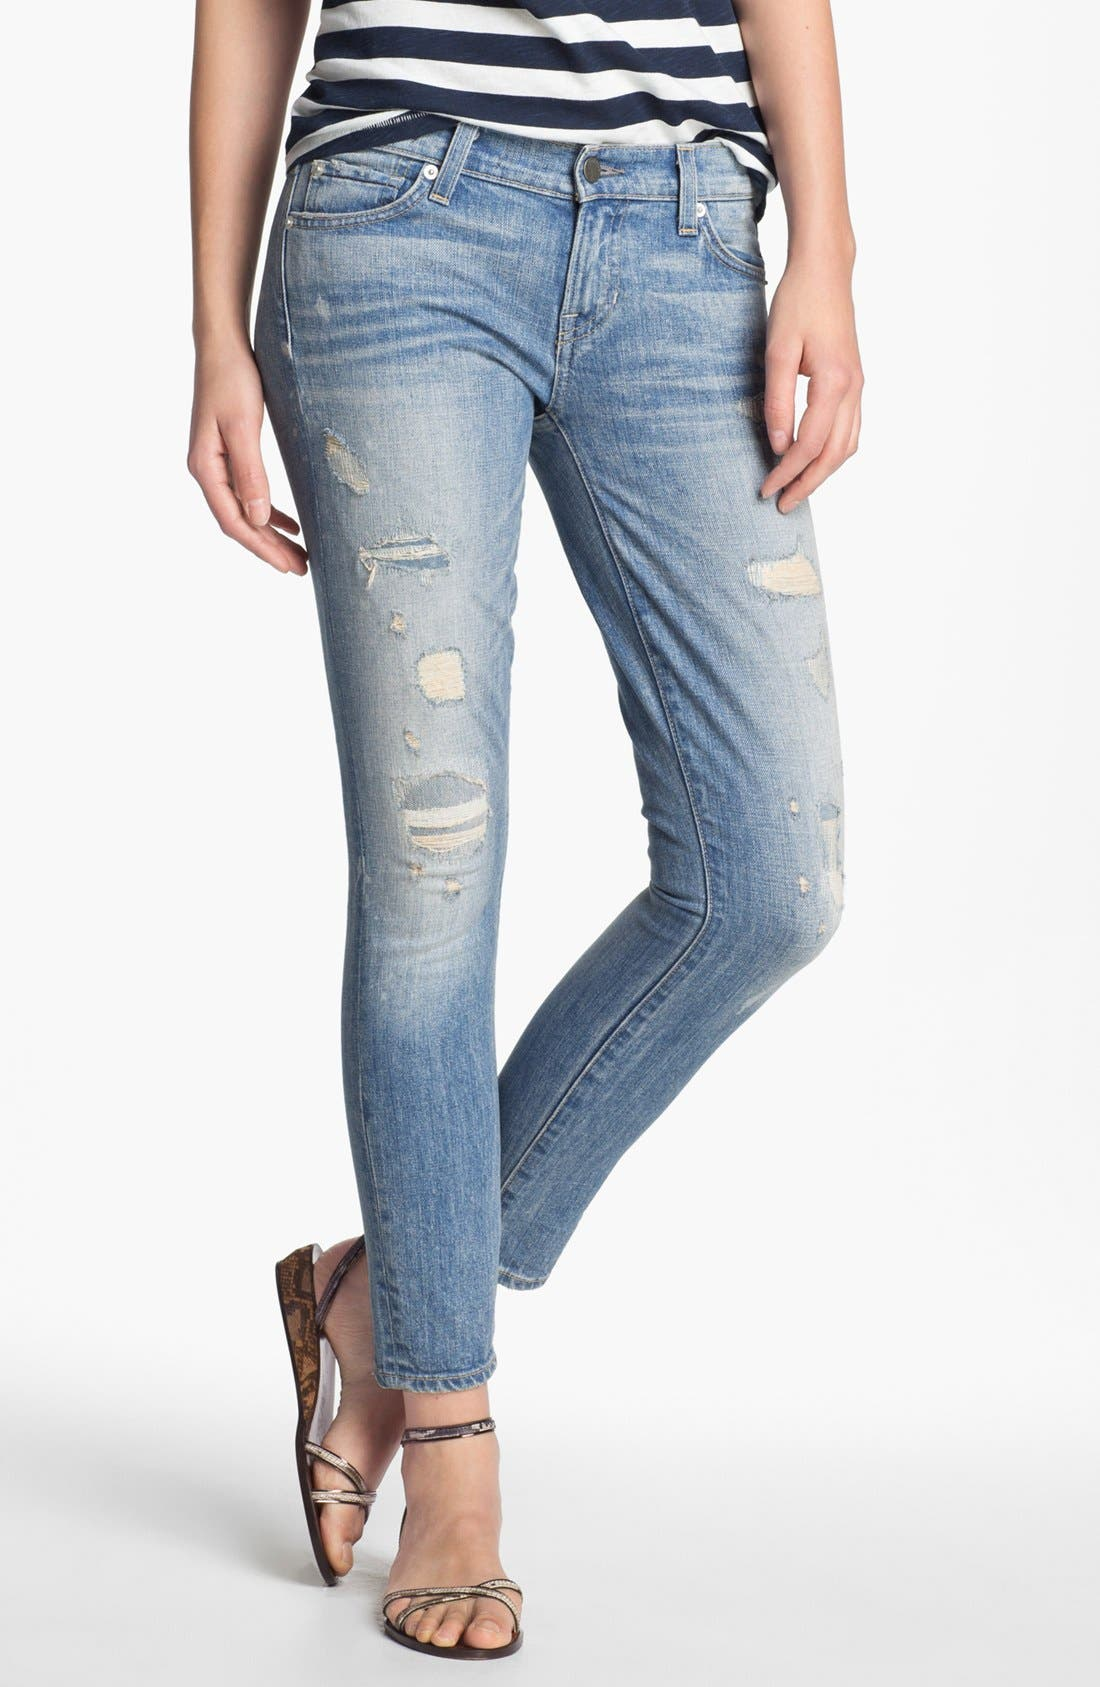 Alternate Image 1 Selected - TEXTILE Elizabeth and James 'Ozzy' Rip & Repair Jeans